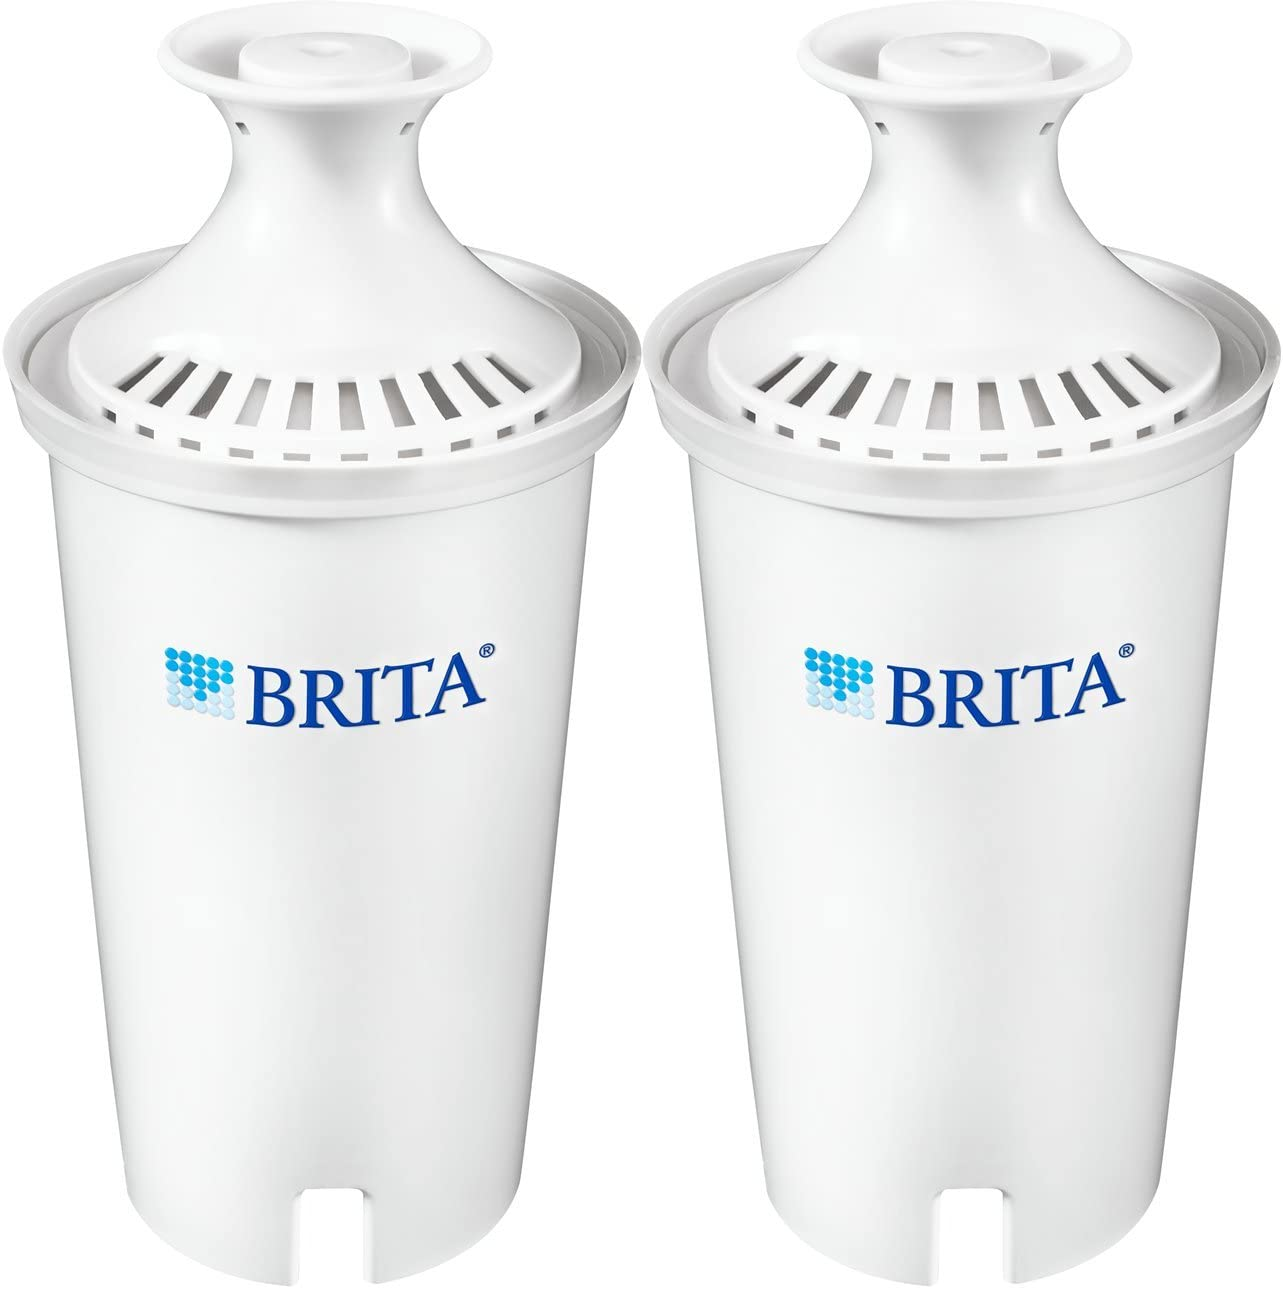 Brita Standard Water Filter Kansas City Mall Replacement for Pi Don't miss the campaign Filters